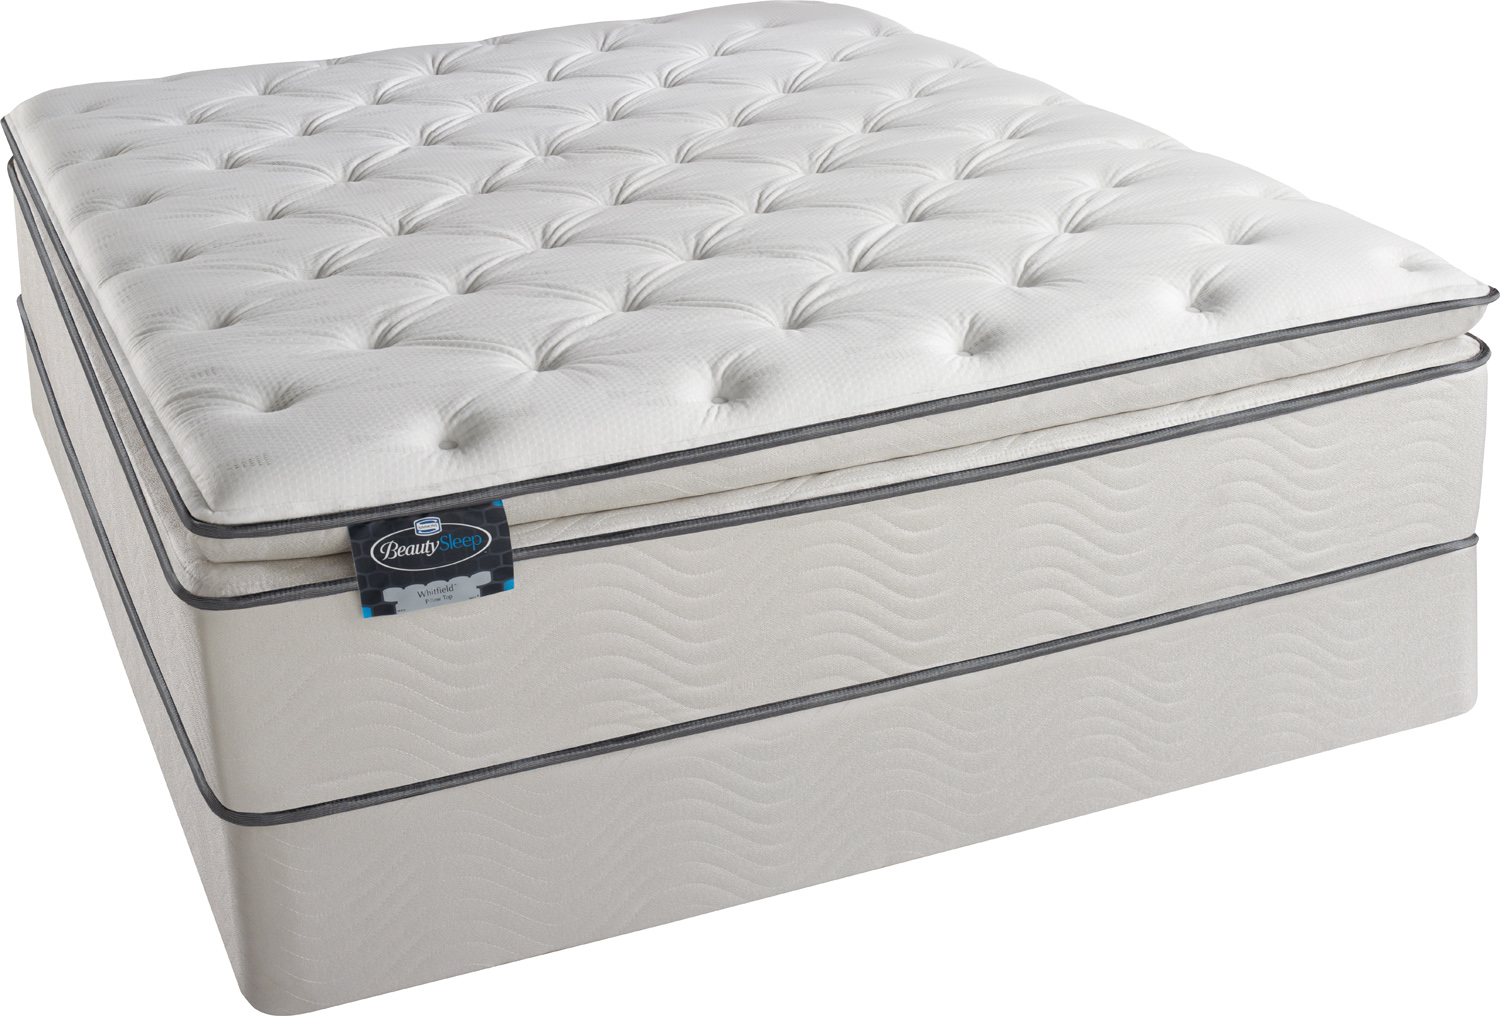 Simmons Beautysleep Euro Pillow Top Foam Encased Mattress